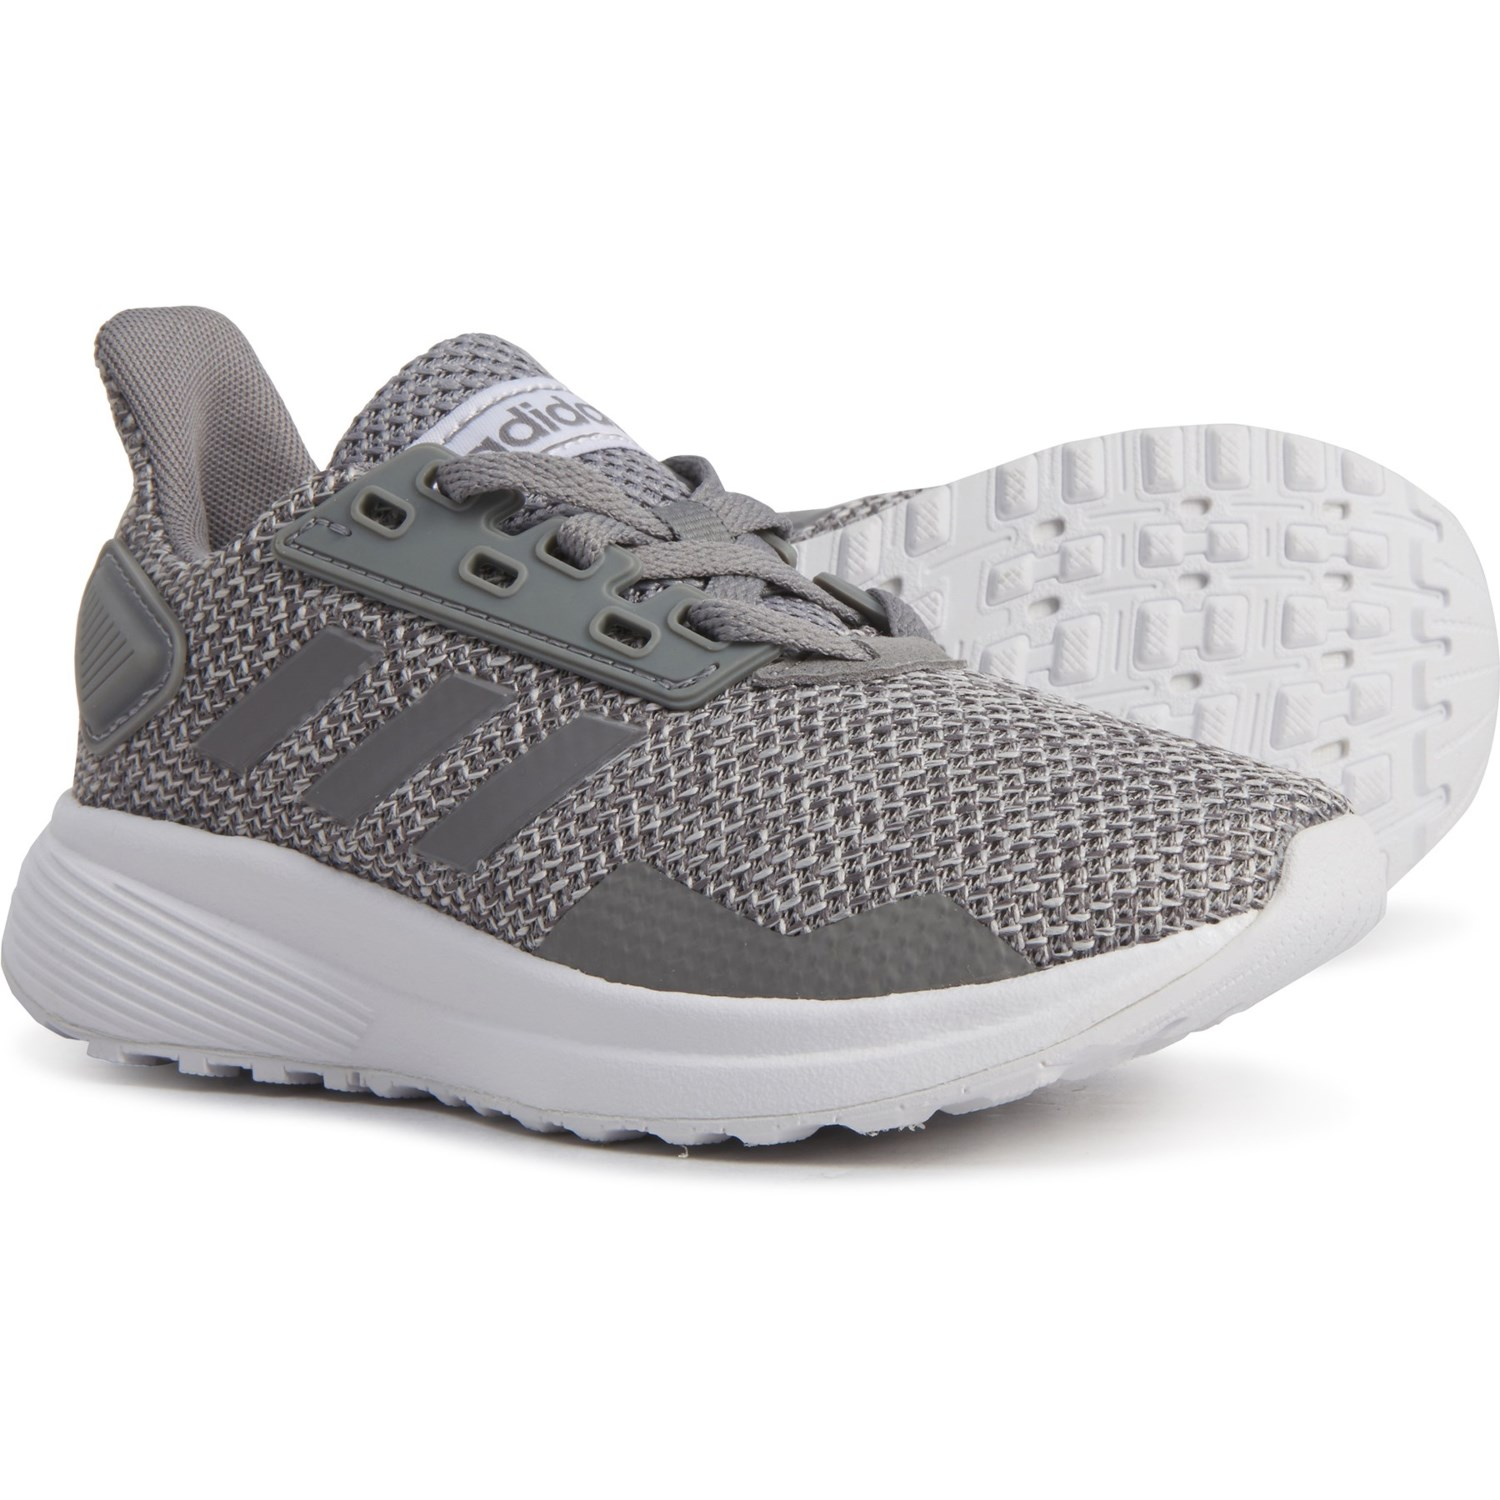 50.00 adidas Performance Duramo 9 Shoes Mens sold by